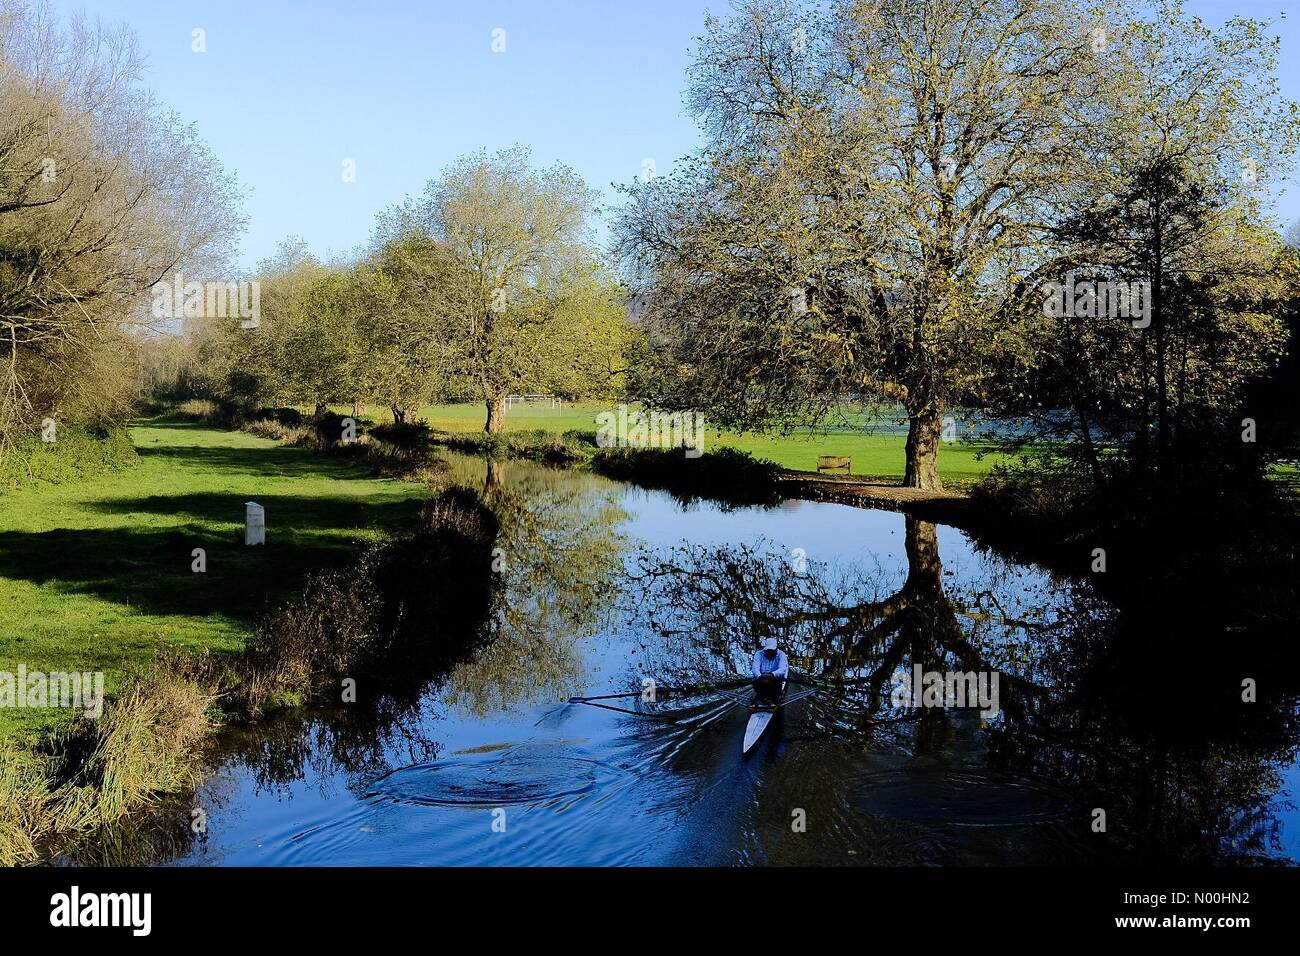 Uk Weather A Glorious Day For Rowing On The River Itchen Winchester Hampshire Credit Paul Chambers